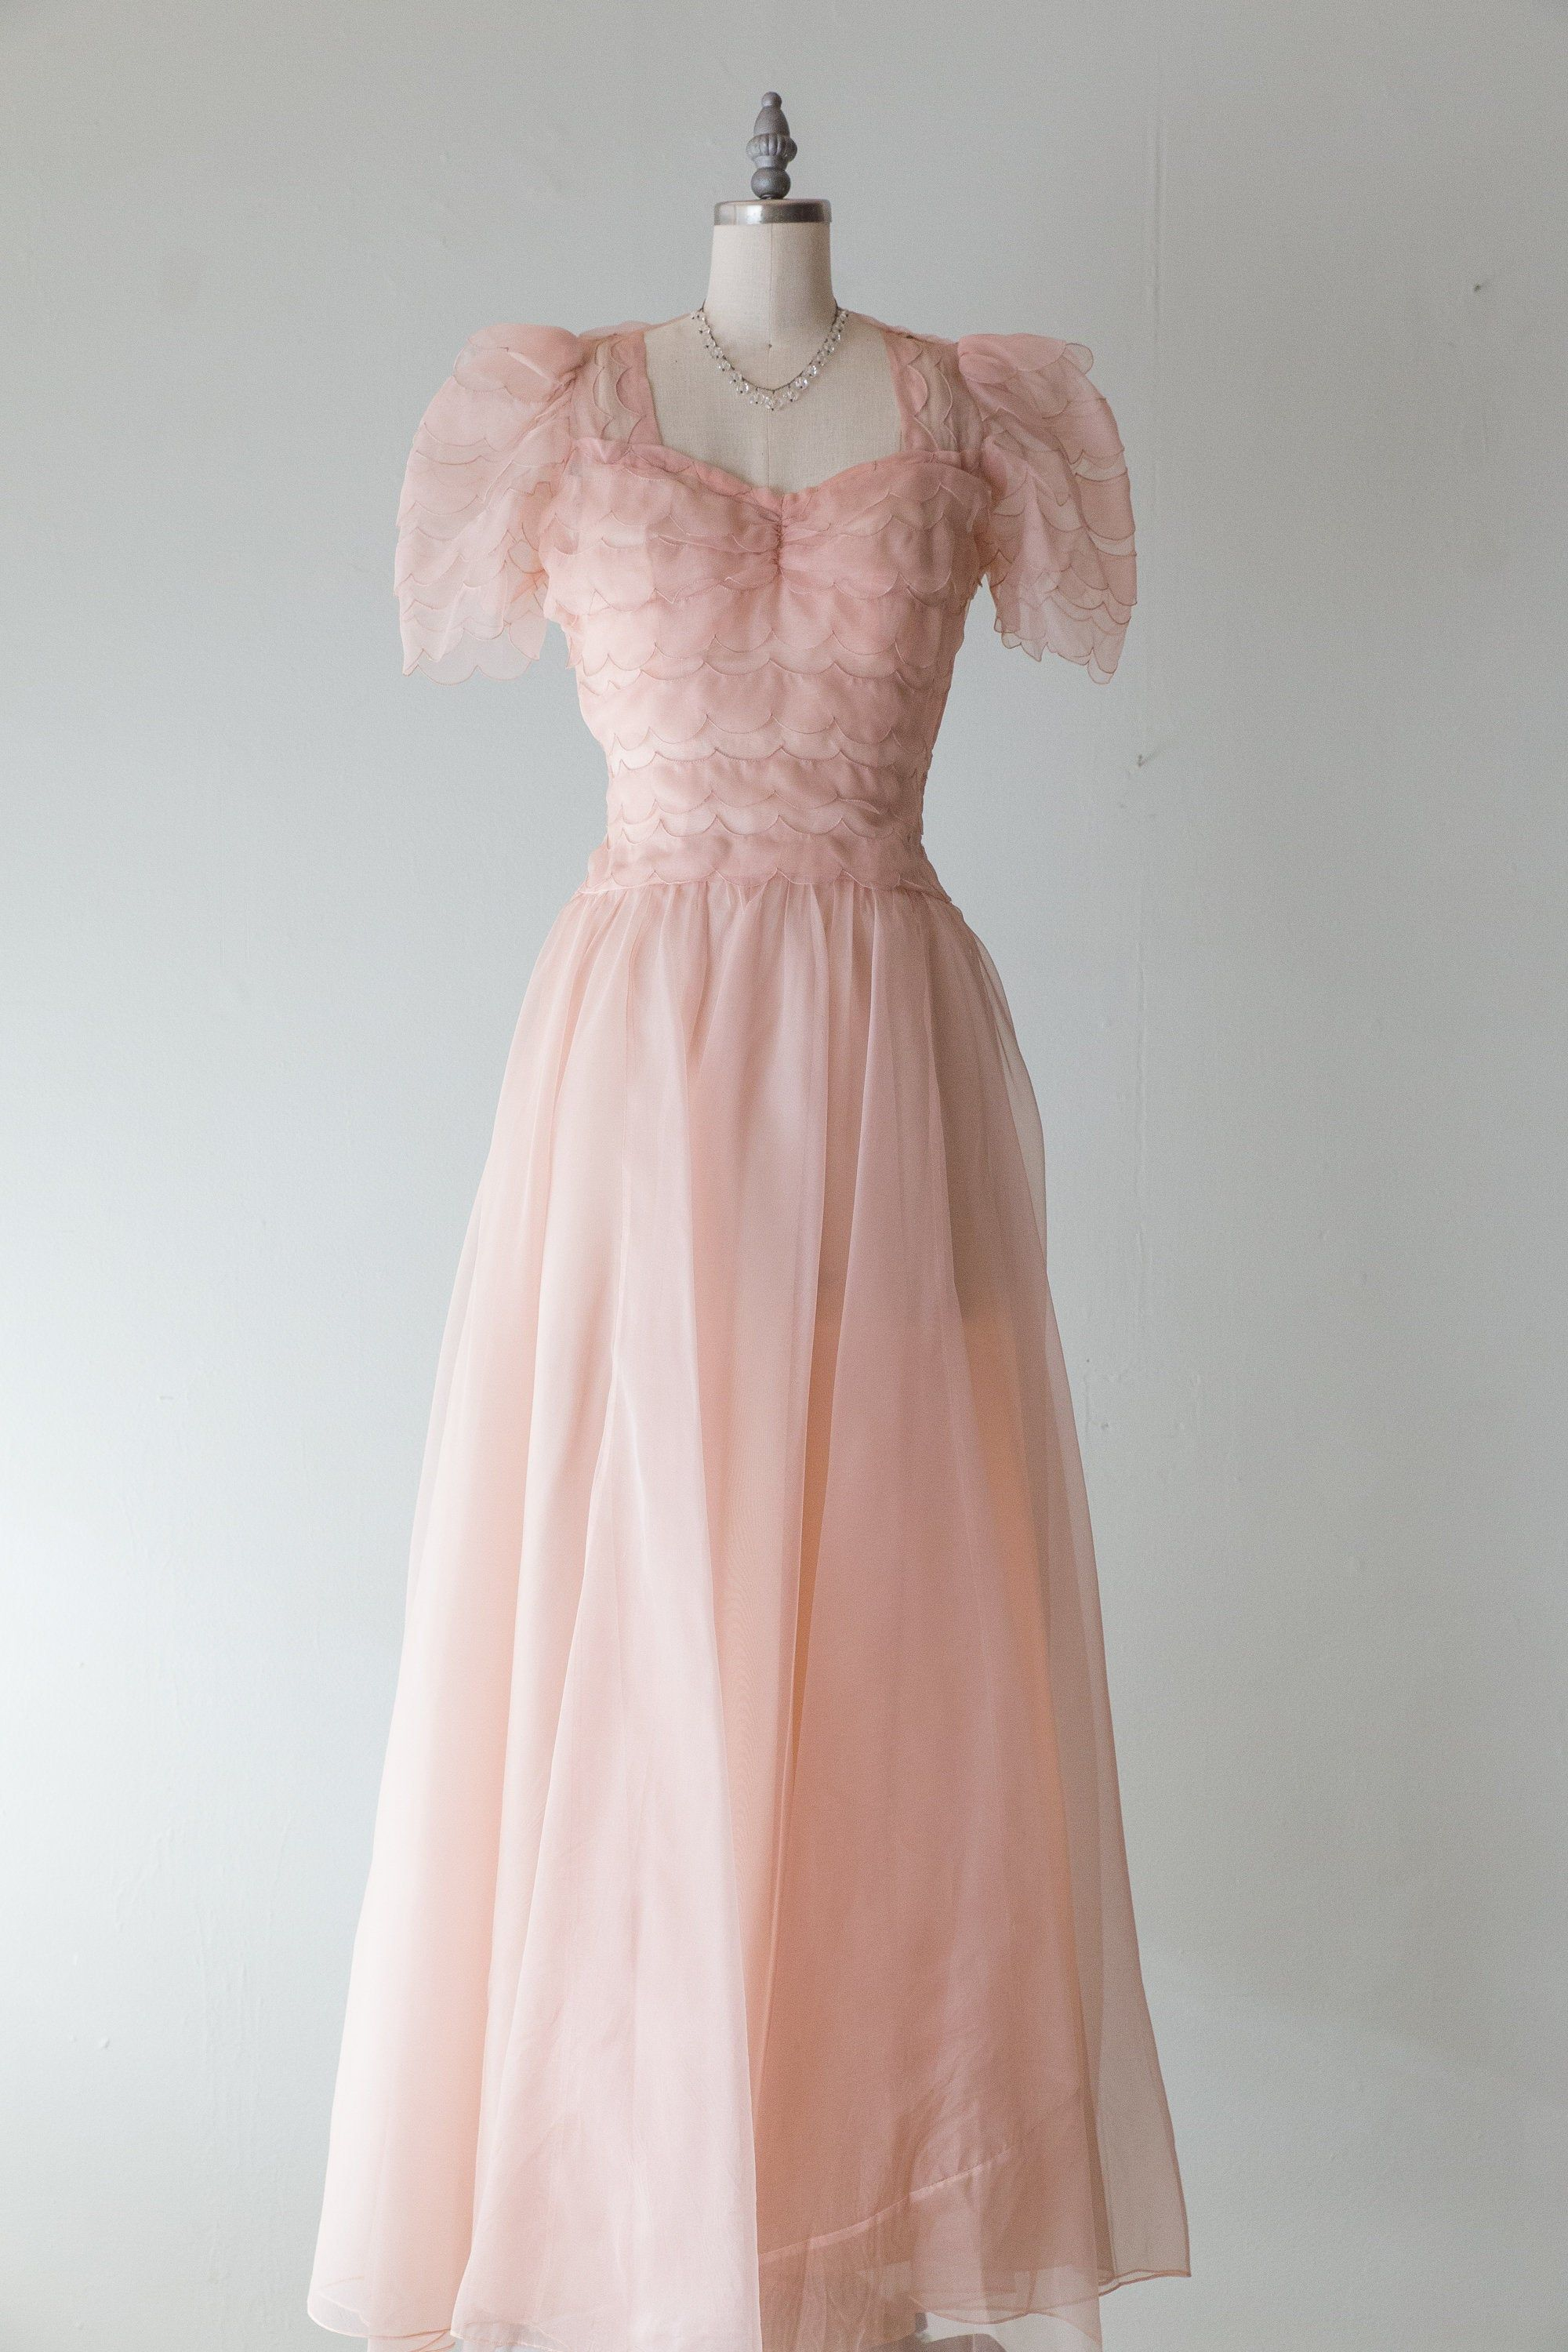 Vintage 1930s Dress 30s Ethereal Pale Pink Silk Organza Evening Dress With Scalloped Bodice And Full Skirt Vintage 1930s Dress 1930s Dress Gorgeous Dresses [ 3000 x 2000 Pixel ]